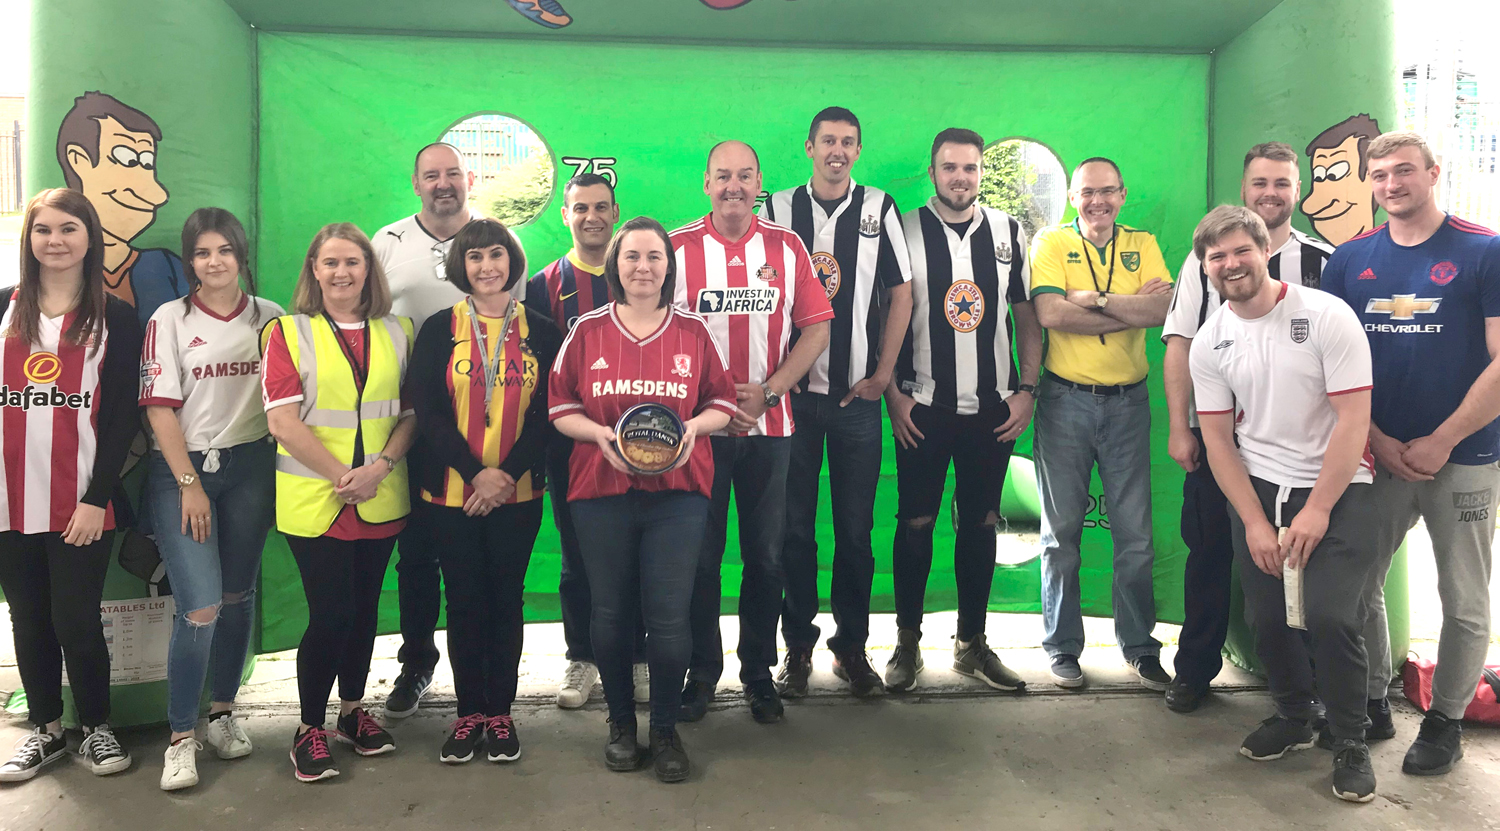 Perry Staff Score Goals for Bowel Cancer Charity